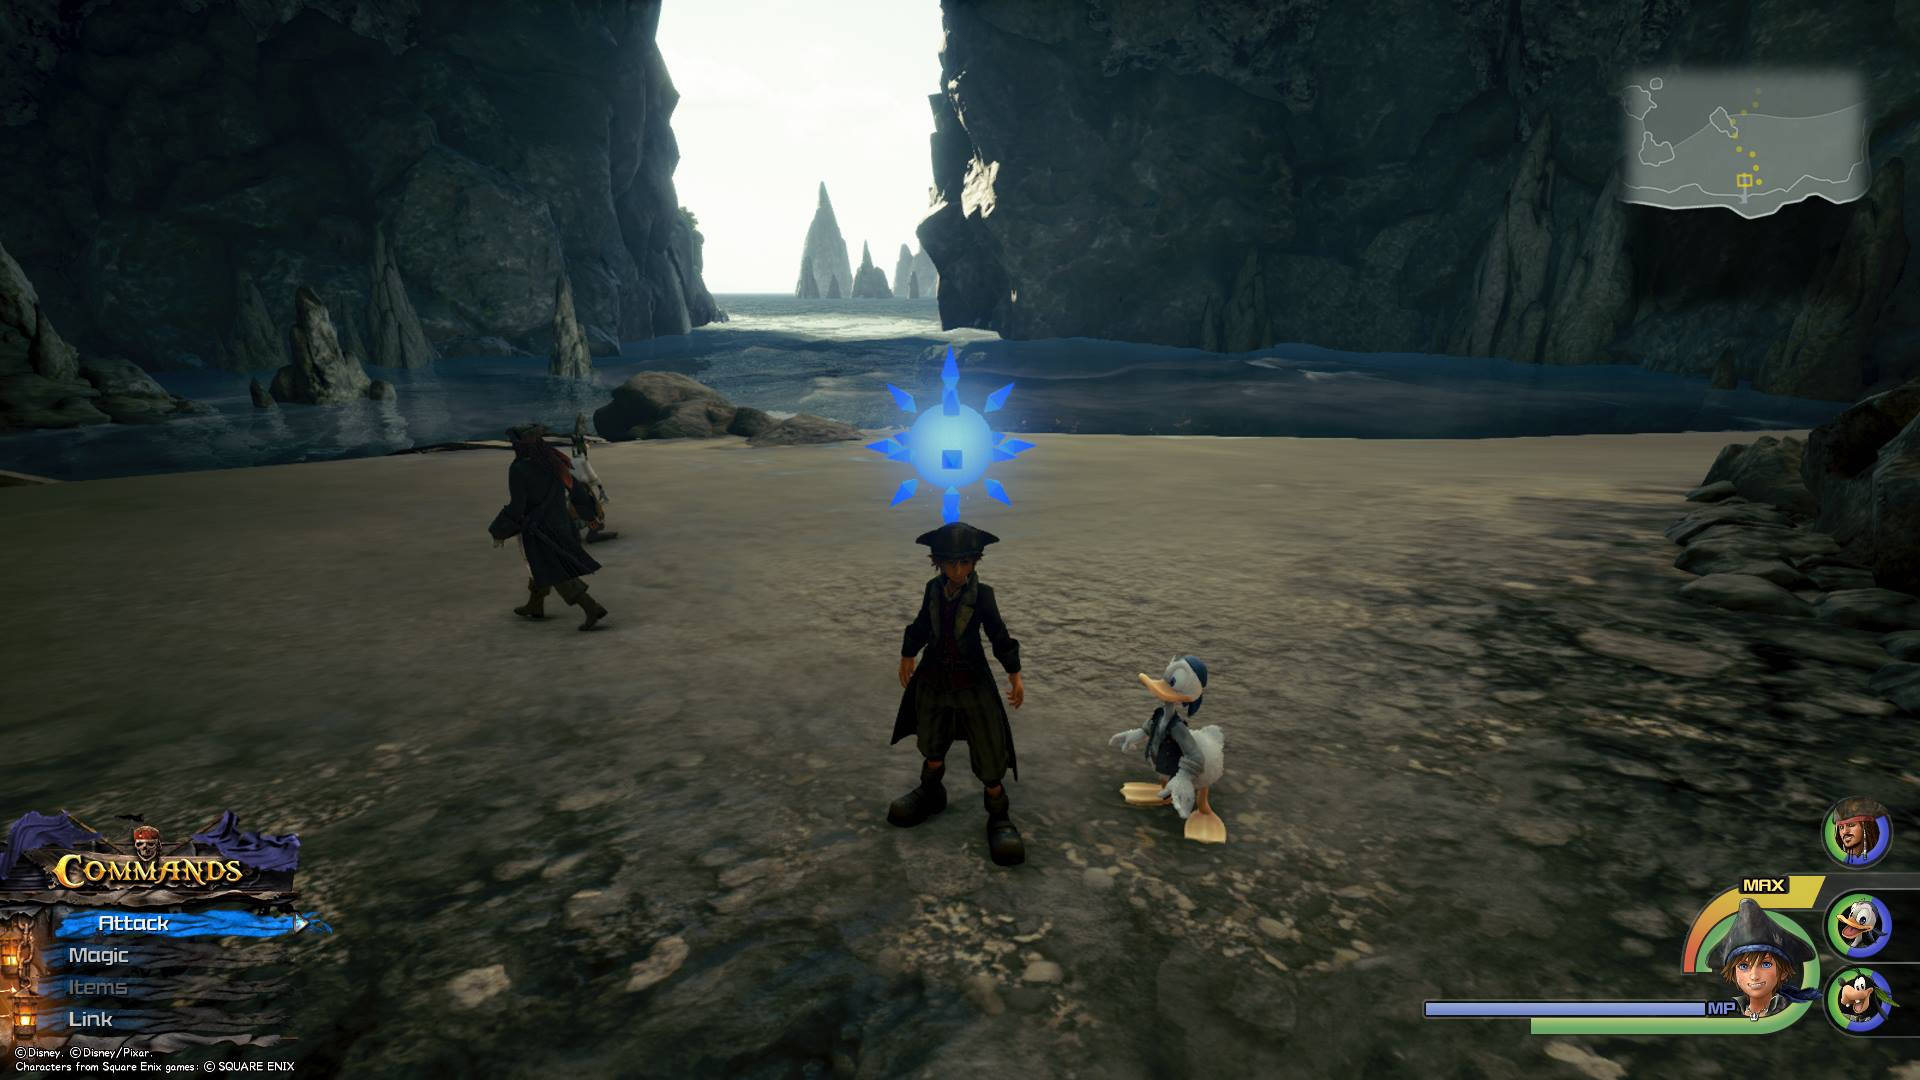 How to get Kingdom Hearts 3 Wellspring Crystal